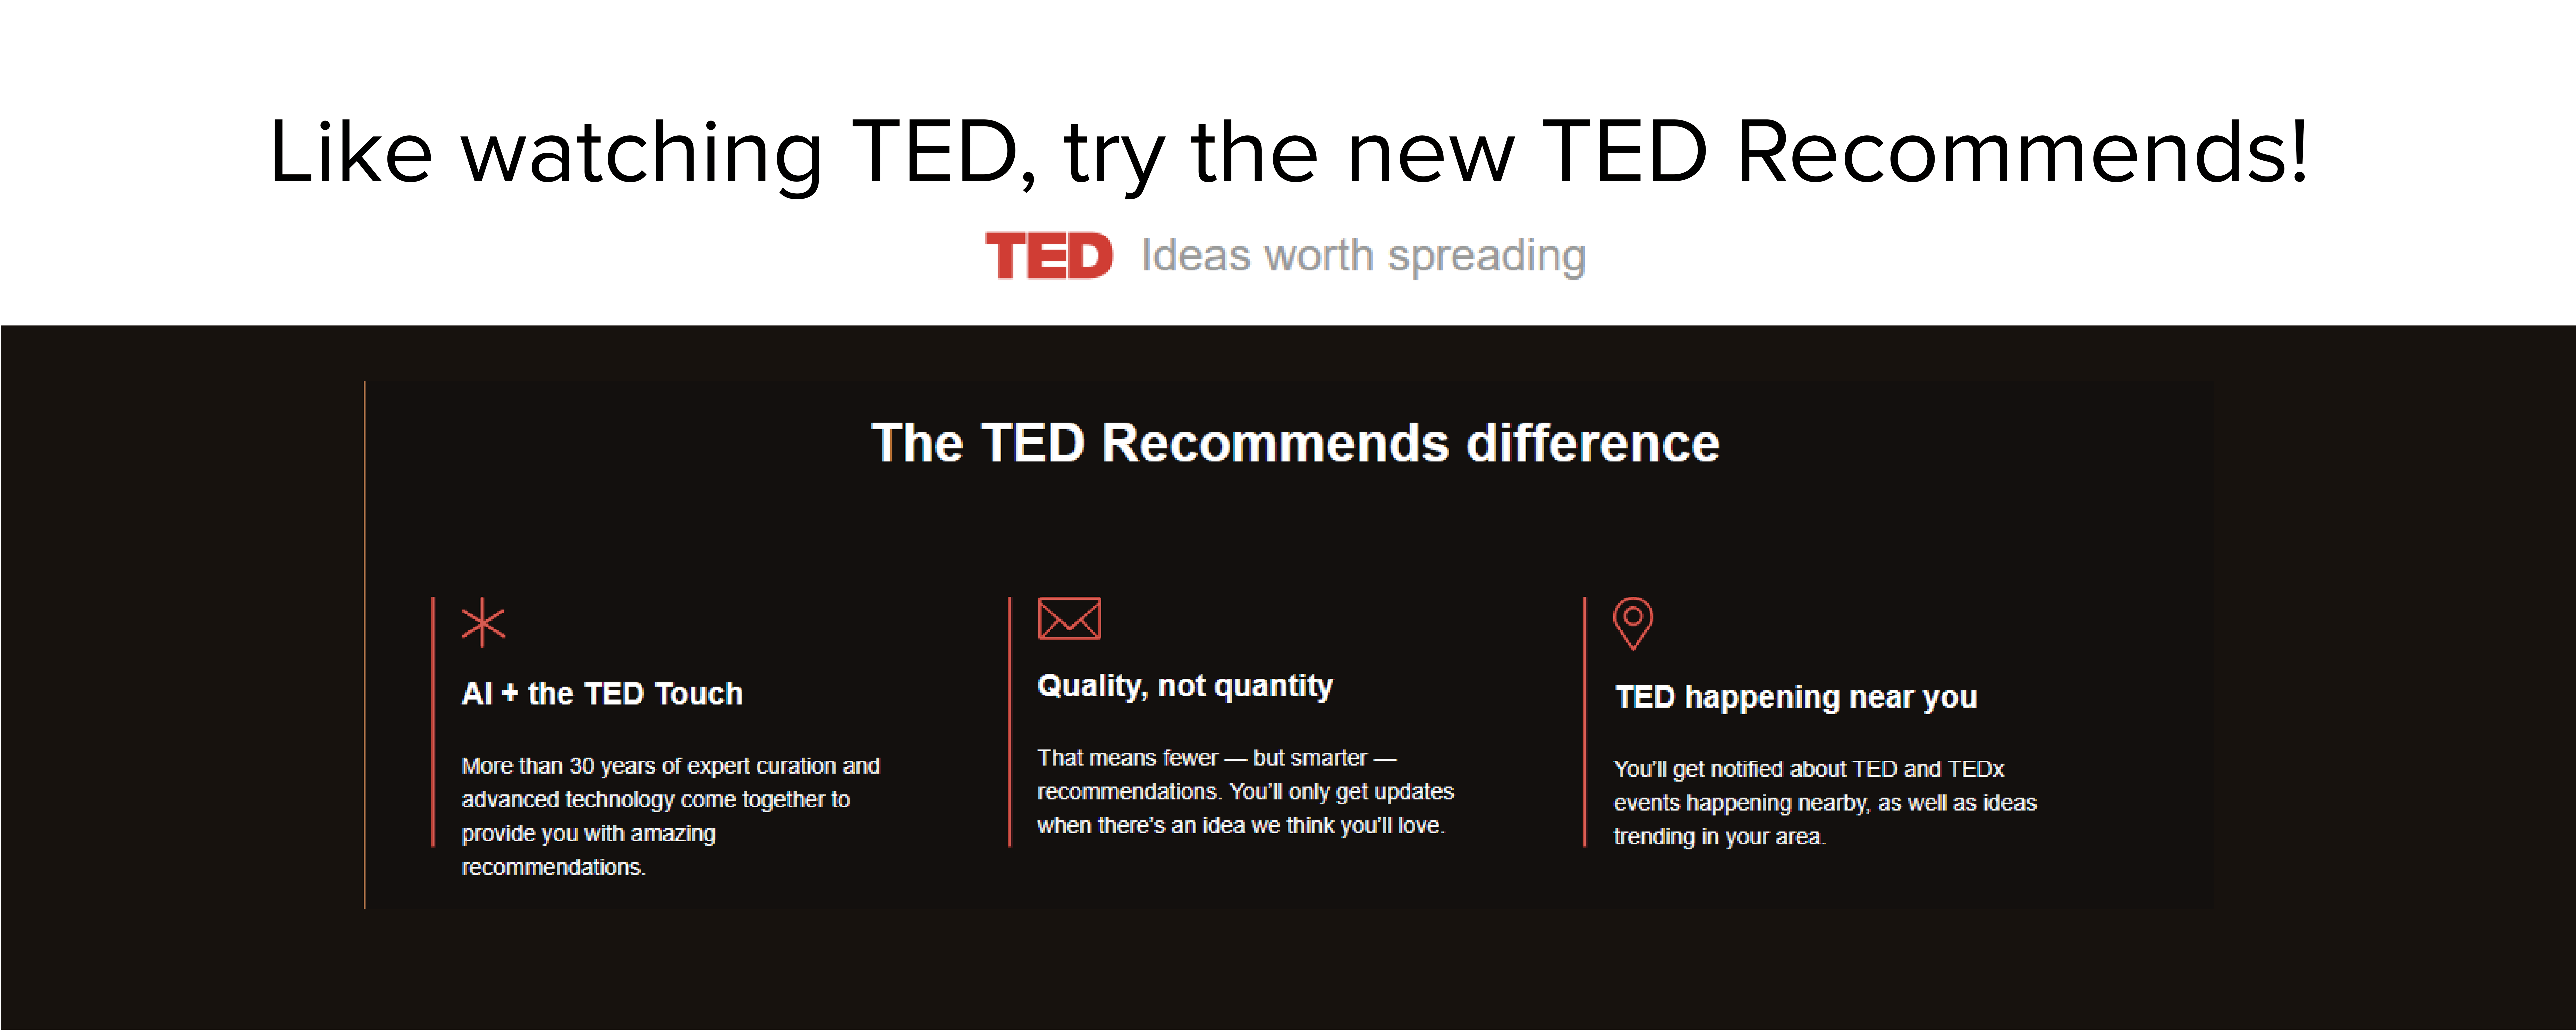 Click to go to TED recommends website